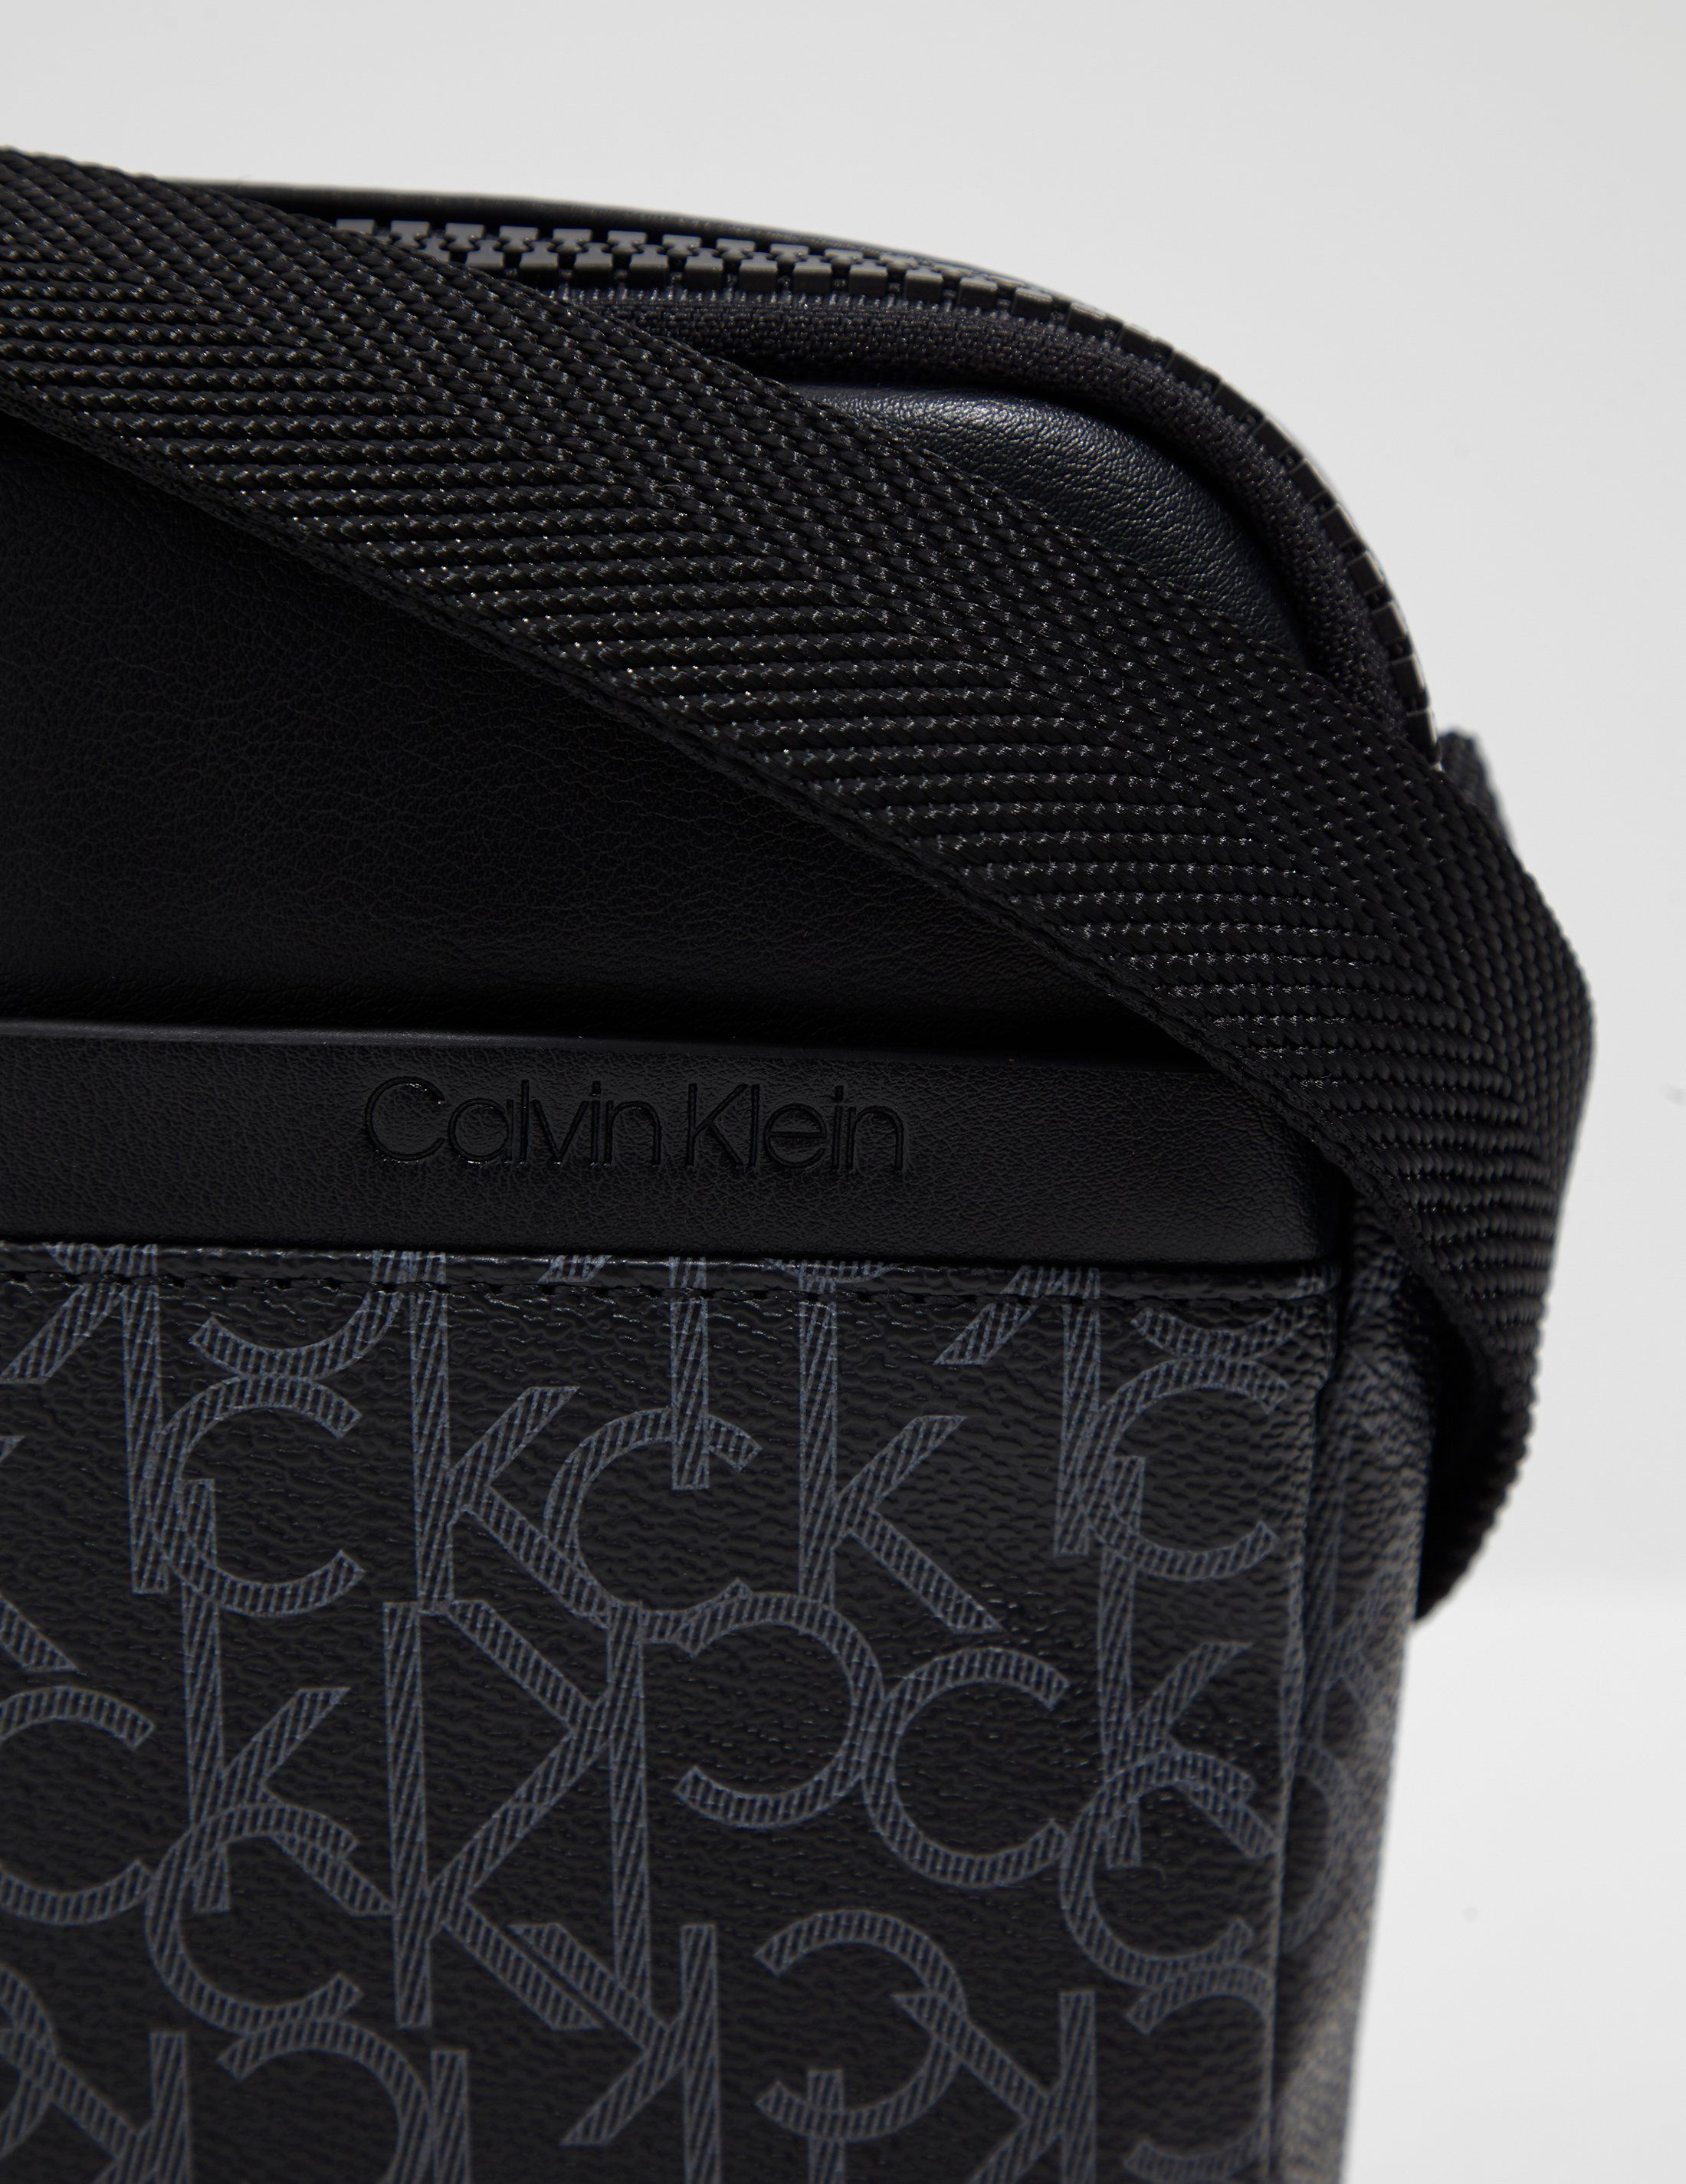 Calvin Klein Monogram Small Item Bag